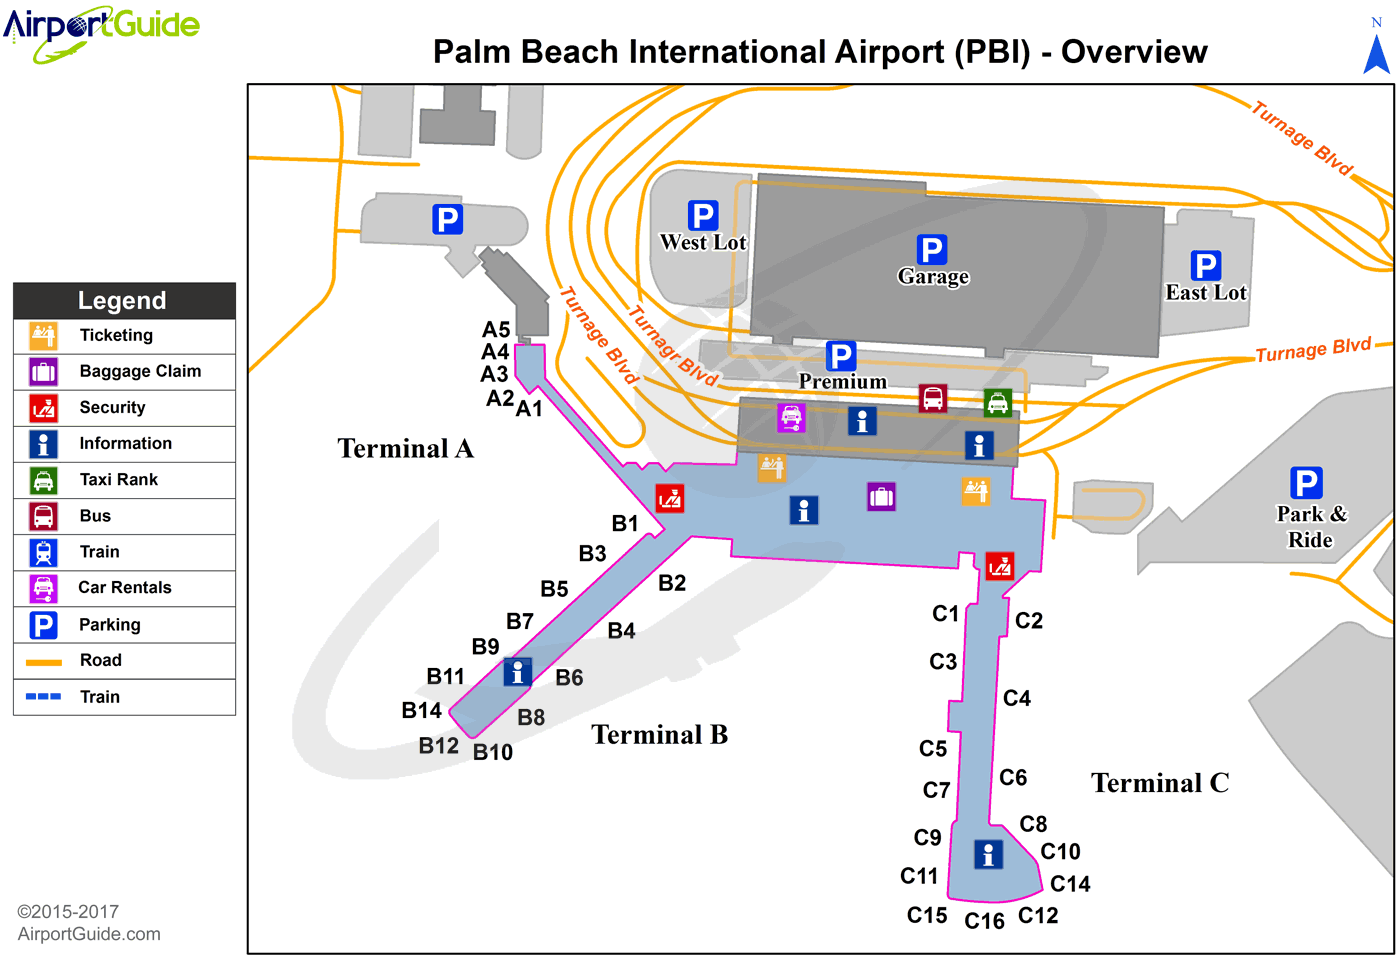 West Palm Beach - Palm Beach International (PBI) Airport Terminal Map - Overview